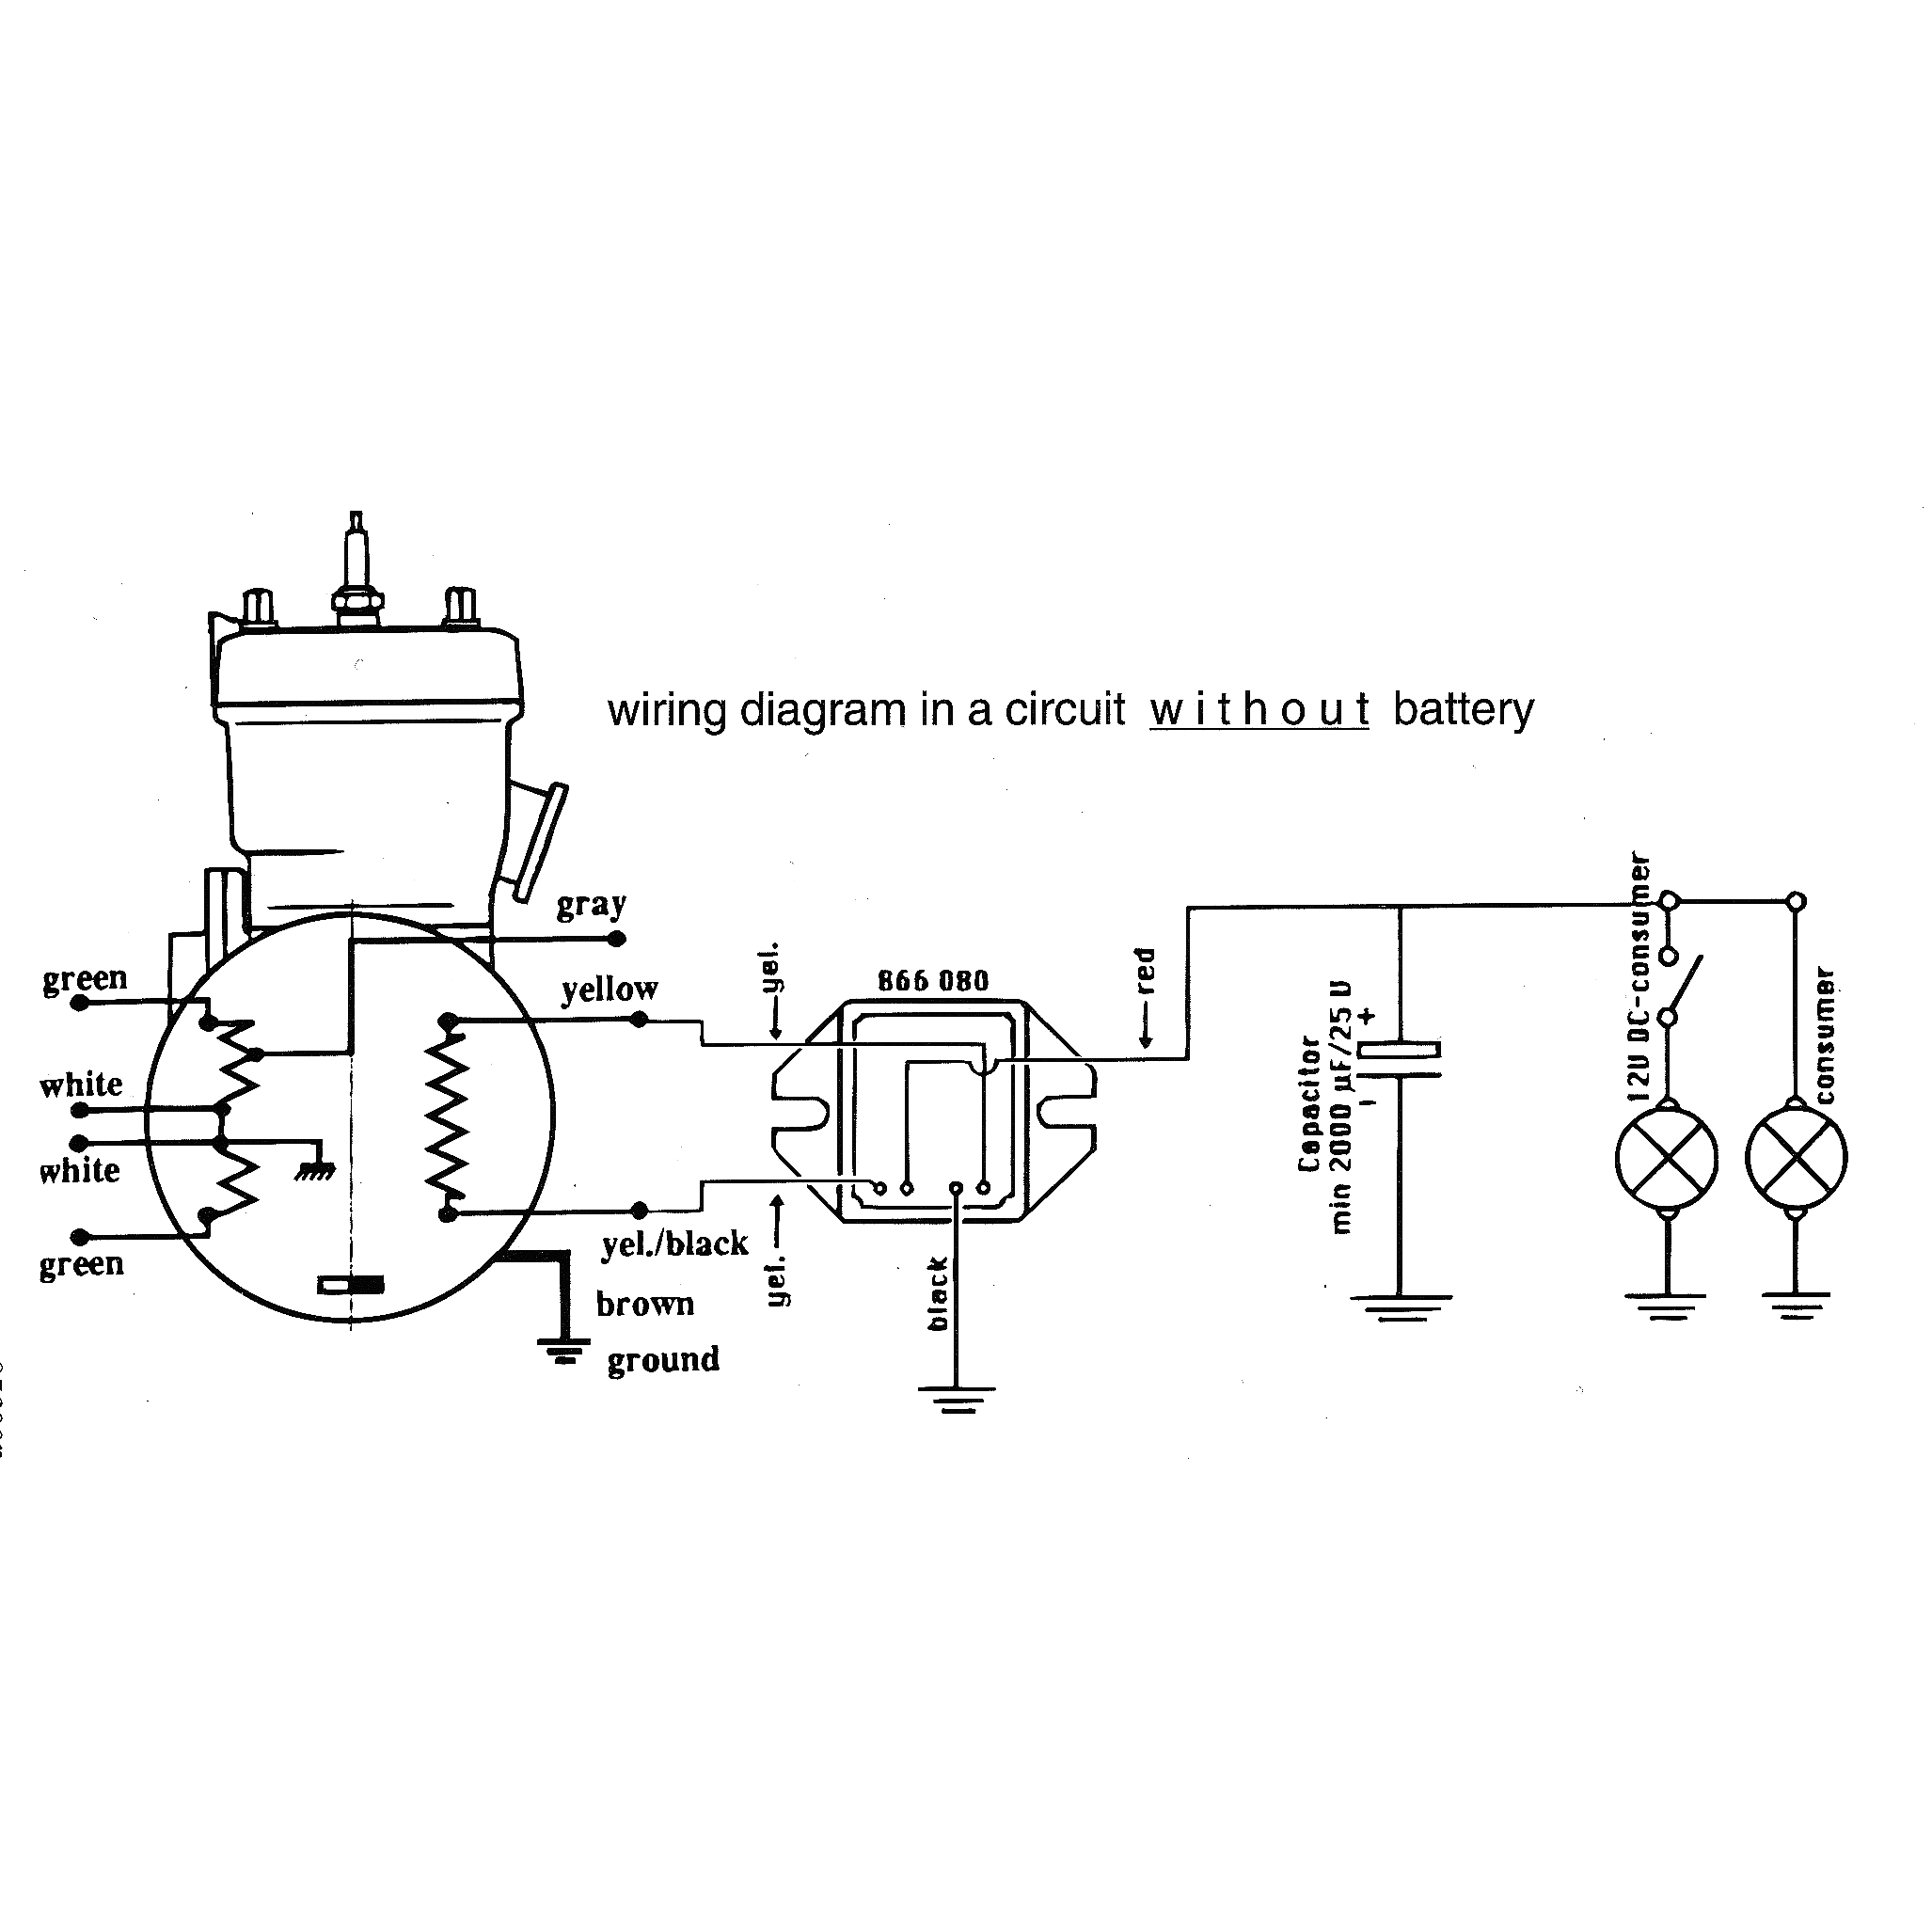 866 080_wobattery tympanium regulator rectifier regulator rectifiers 2 stroke tympanium wiring diagram at n-0.co